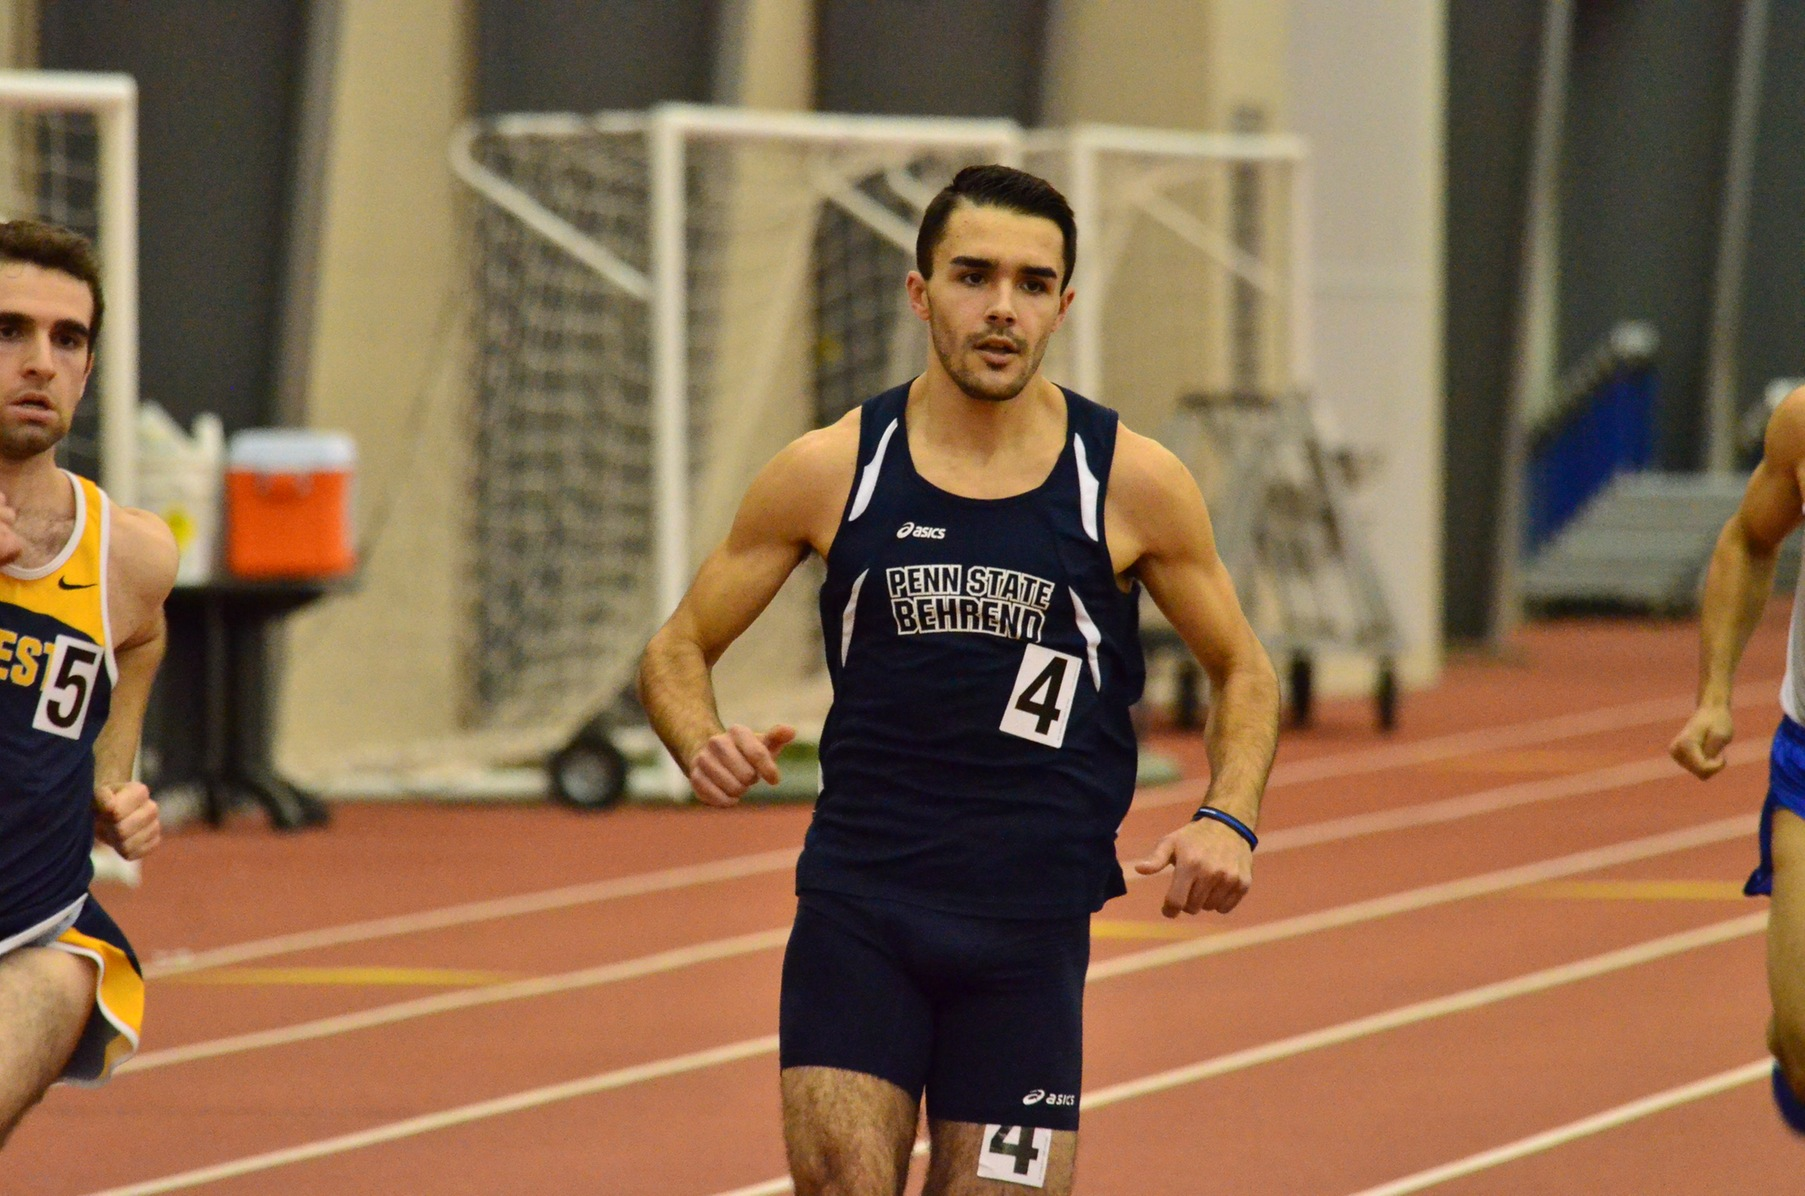 Men's Track and Field Competed at Mount Union Saturday